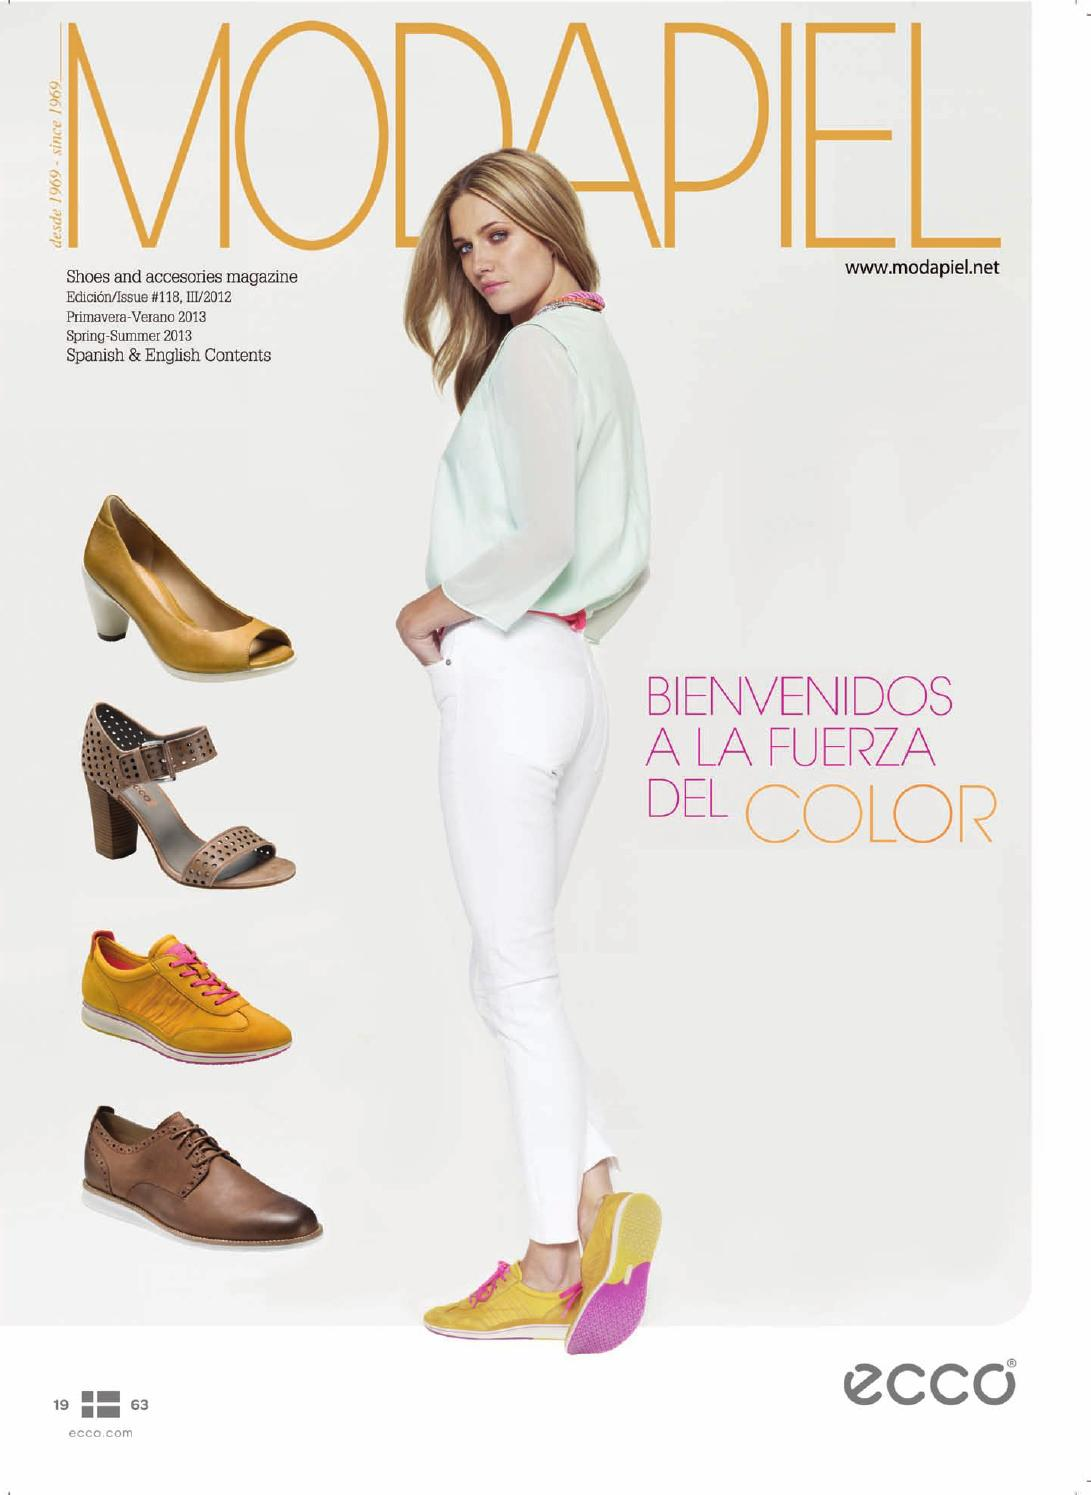 Modapiel 118 Shoes and accessories magazine by Prensa Técnica S.L. - issuu 8af9972578e